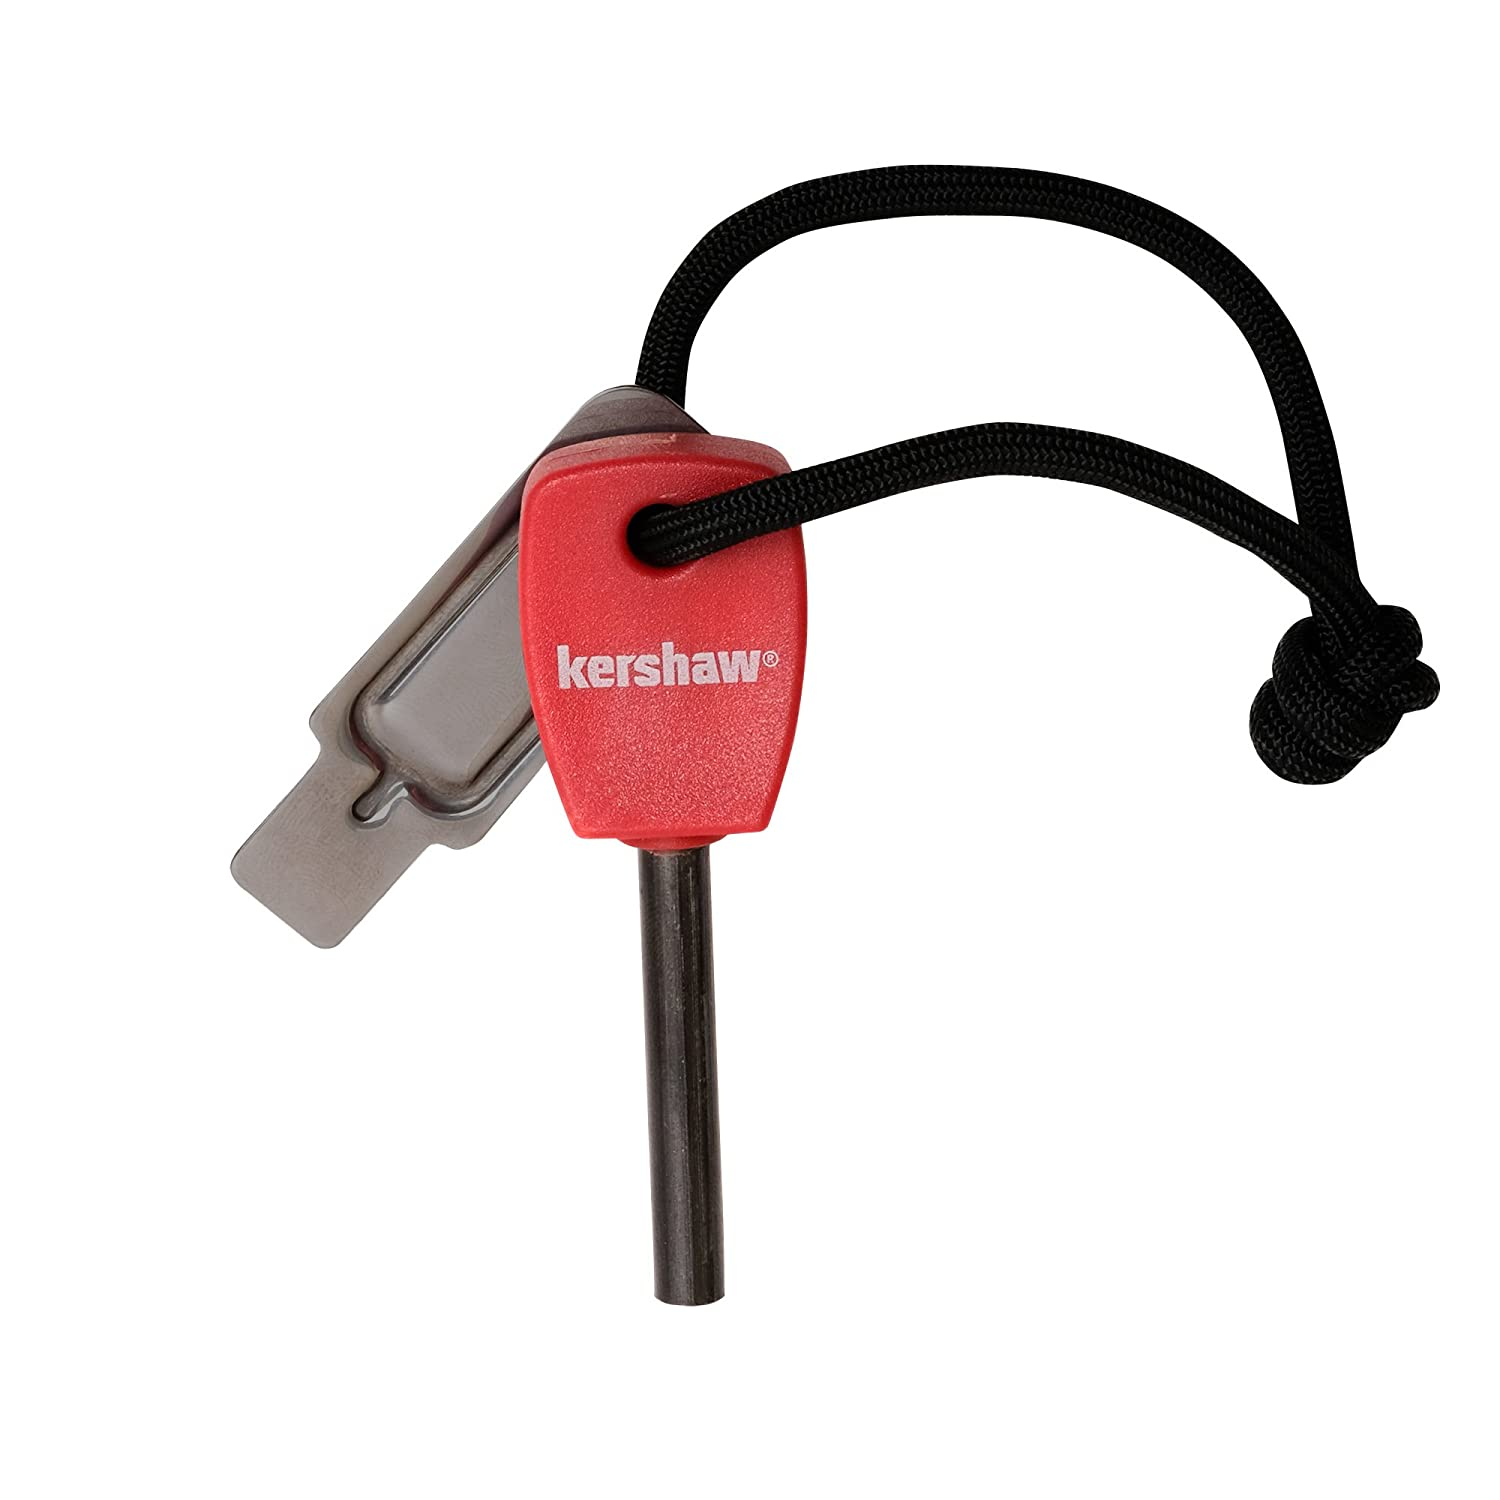 """Red Molded Plastic Handle Chrome-Plated Striker Steel Up to 3000 Strikes Nylon Lanyard Waterproof 1019X Kershaw Firestarter Easy to Operate 1.1 OZ 3.1/"""" High-Performance Magnesium Firesteel"""